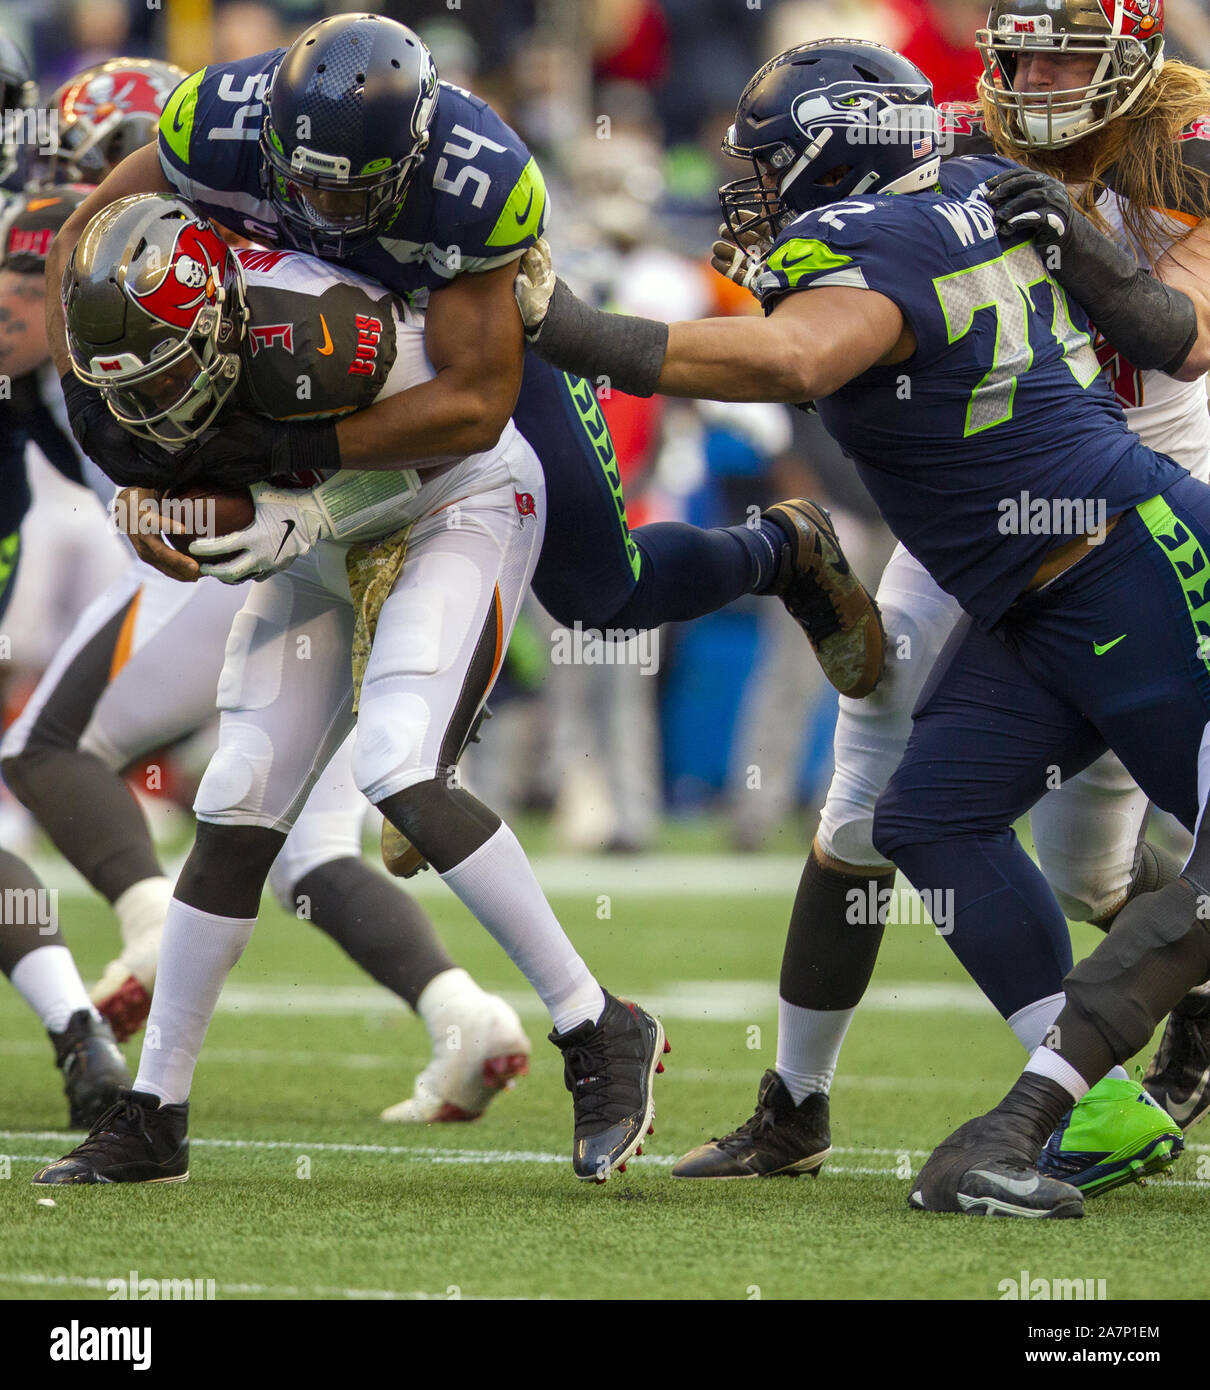 Seattle, United States. 03rd Nov, 2019. Seattle Seahawks middle linebacker Bobby Wagner (54) sacks Tampa Bay Buccaneers quarterback Jameis Winston (3) during the fourth quarter at CenturyLink Field on Sunday, November 3, 2019 in Seattle, Washington. The Seahawks beat the Buccaneers 40-34 in overtime. Jim Bryant Photo/UPI Credit: UPI/Alamy Live News Stock Photo